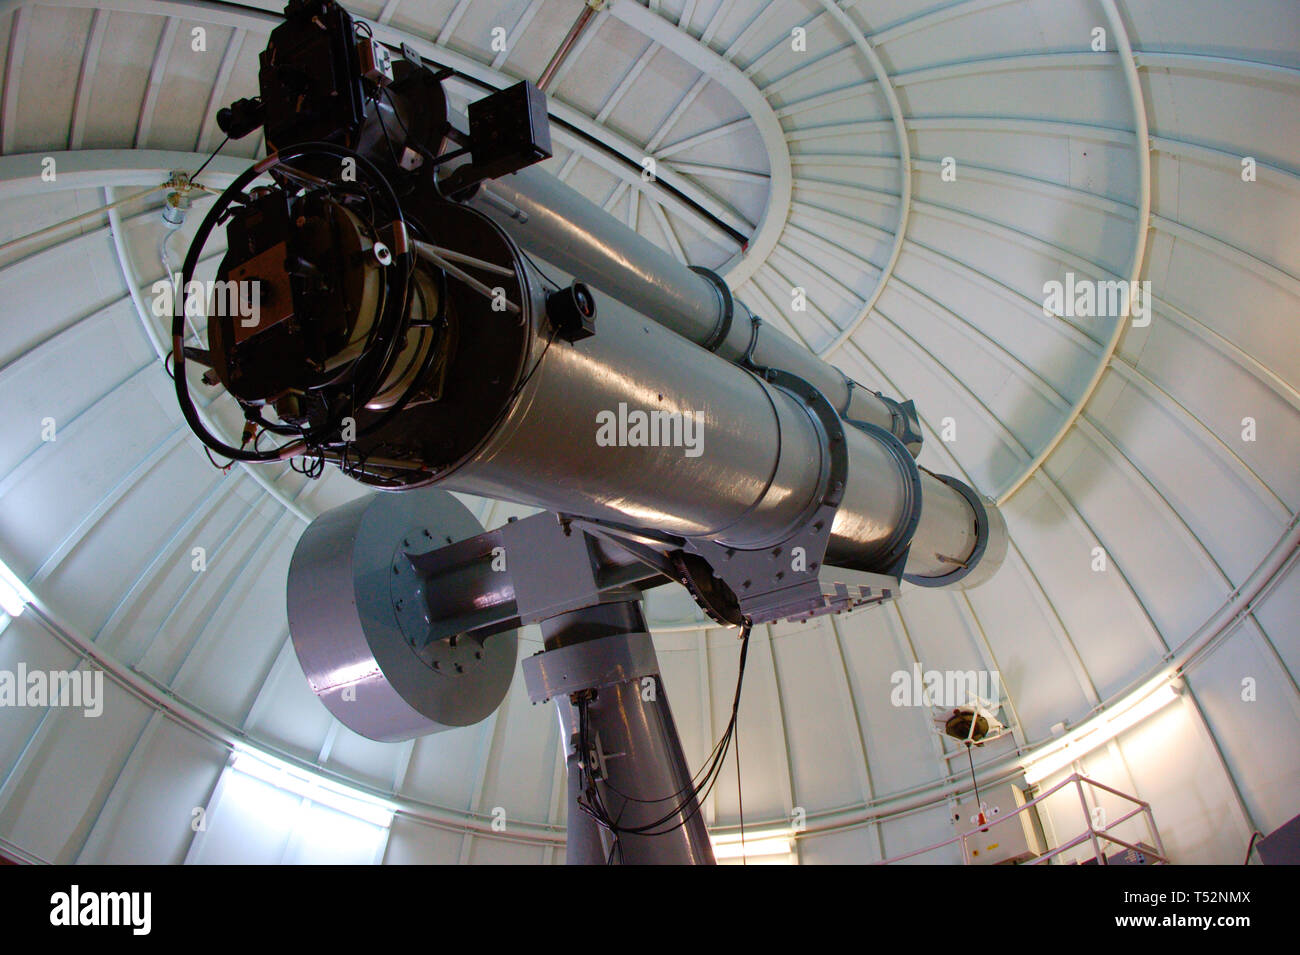 Telescope from the 1950's at an observatory. Vintage technology. - Stock Image